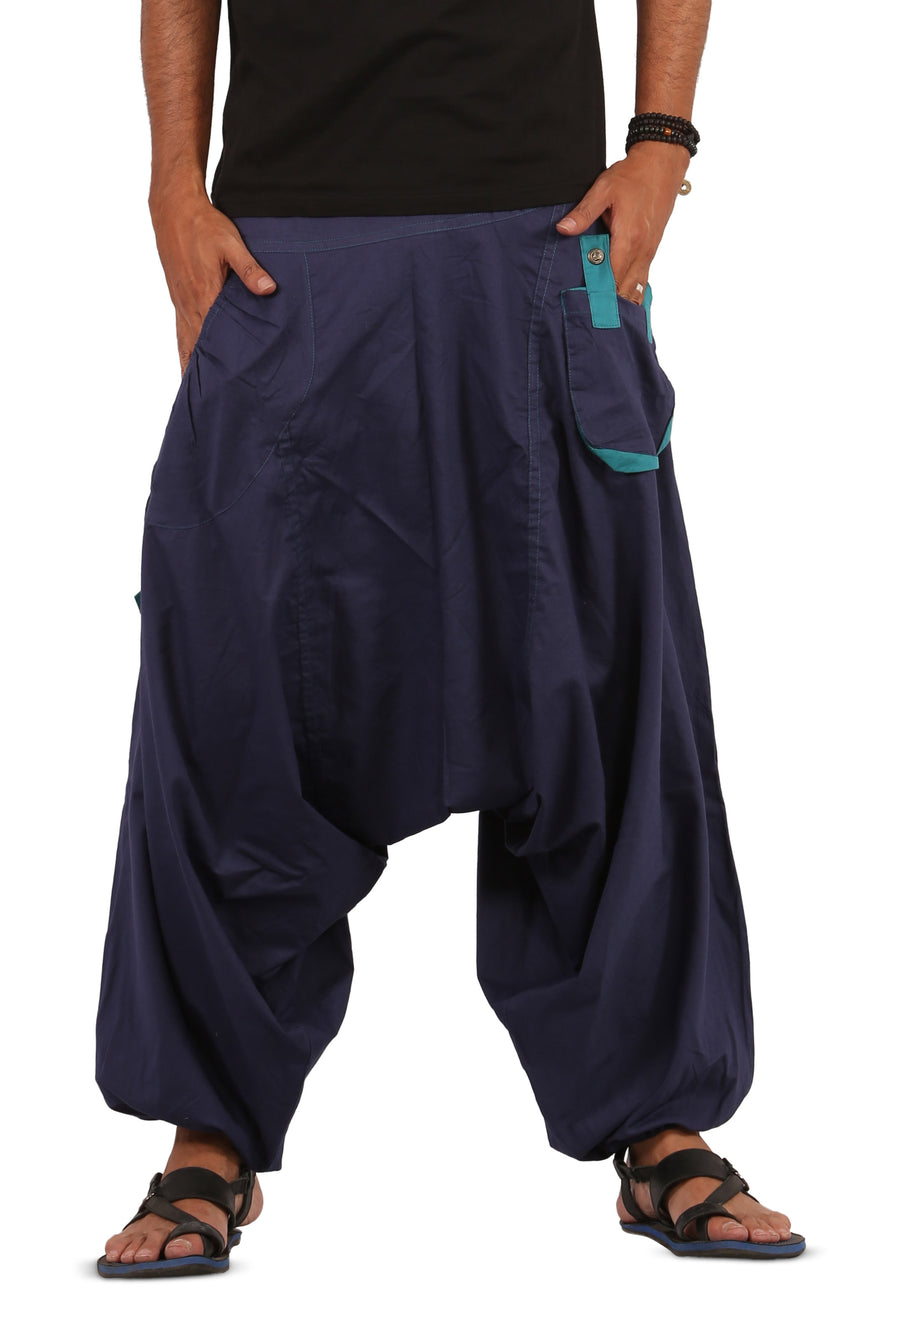 Harem Pants, Blue Harem Pants, Show me some Mens Harem Pants, Show me some Womens Harem Pants, What is a harem pant, Show me some baggy pants, I want to buy harem pants, comfy pants, travel pants, picnic pants, hiking pants, cool harem pants, Wide leg harem Pants, Cheap Harem Pants, Hippie Pants, Cotton Harem Pants, Show me best harem pants, Highly rated Harem Pants, Best Casual Pants